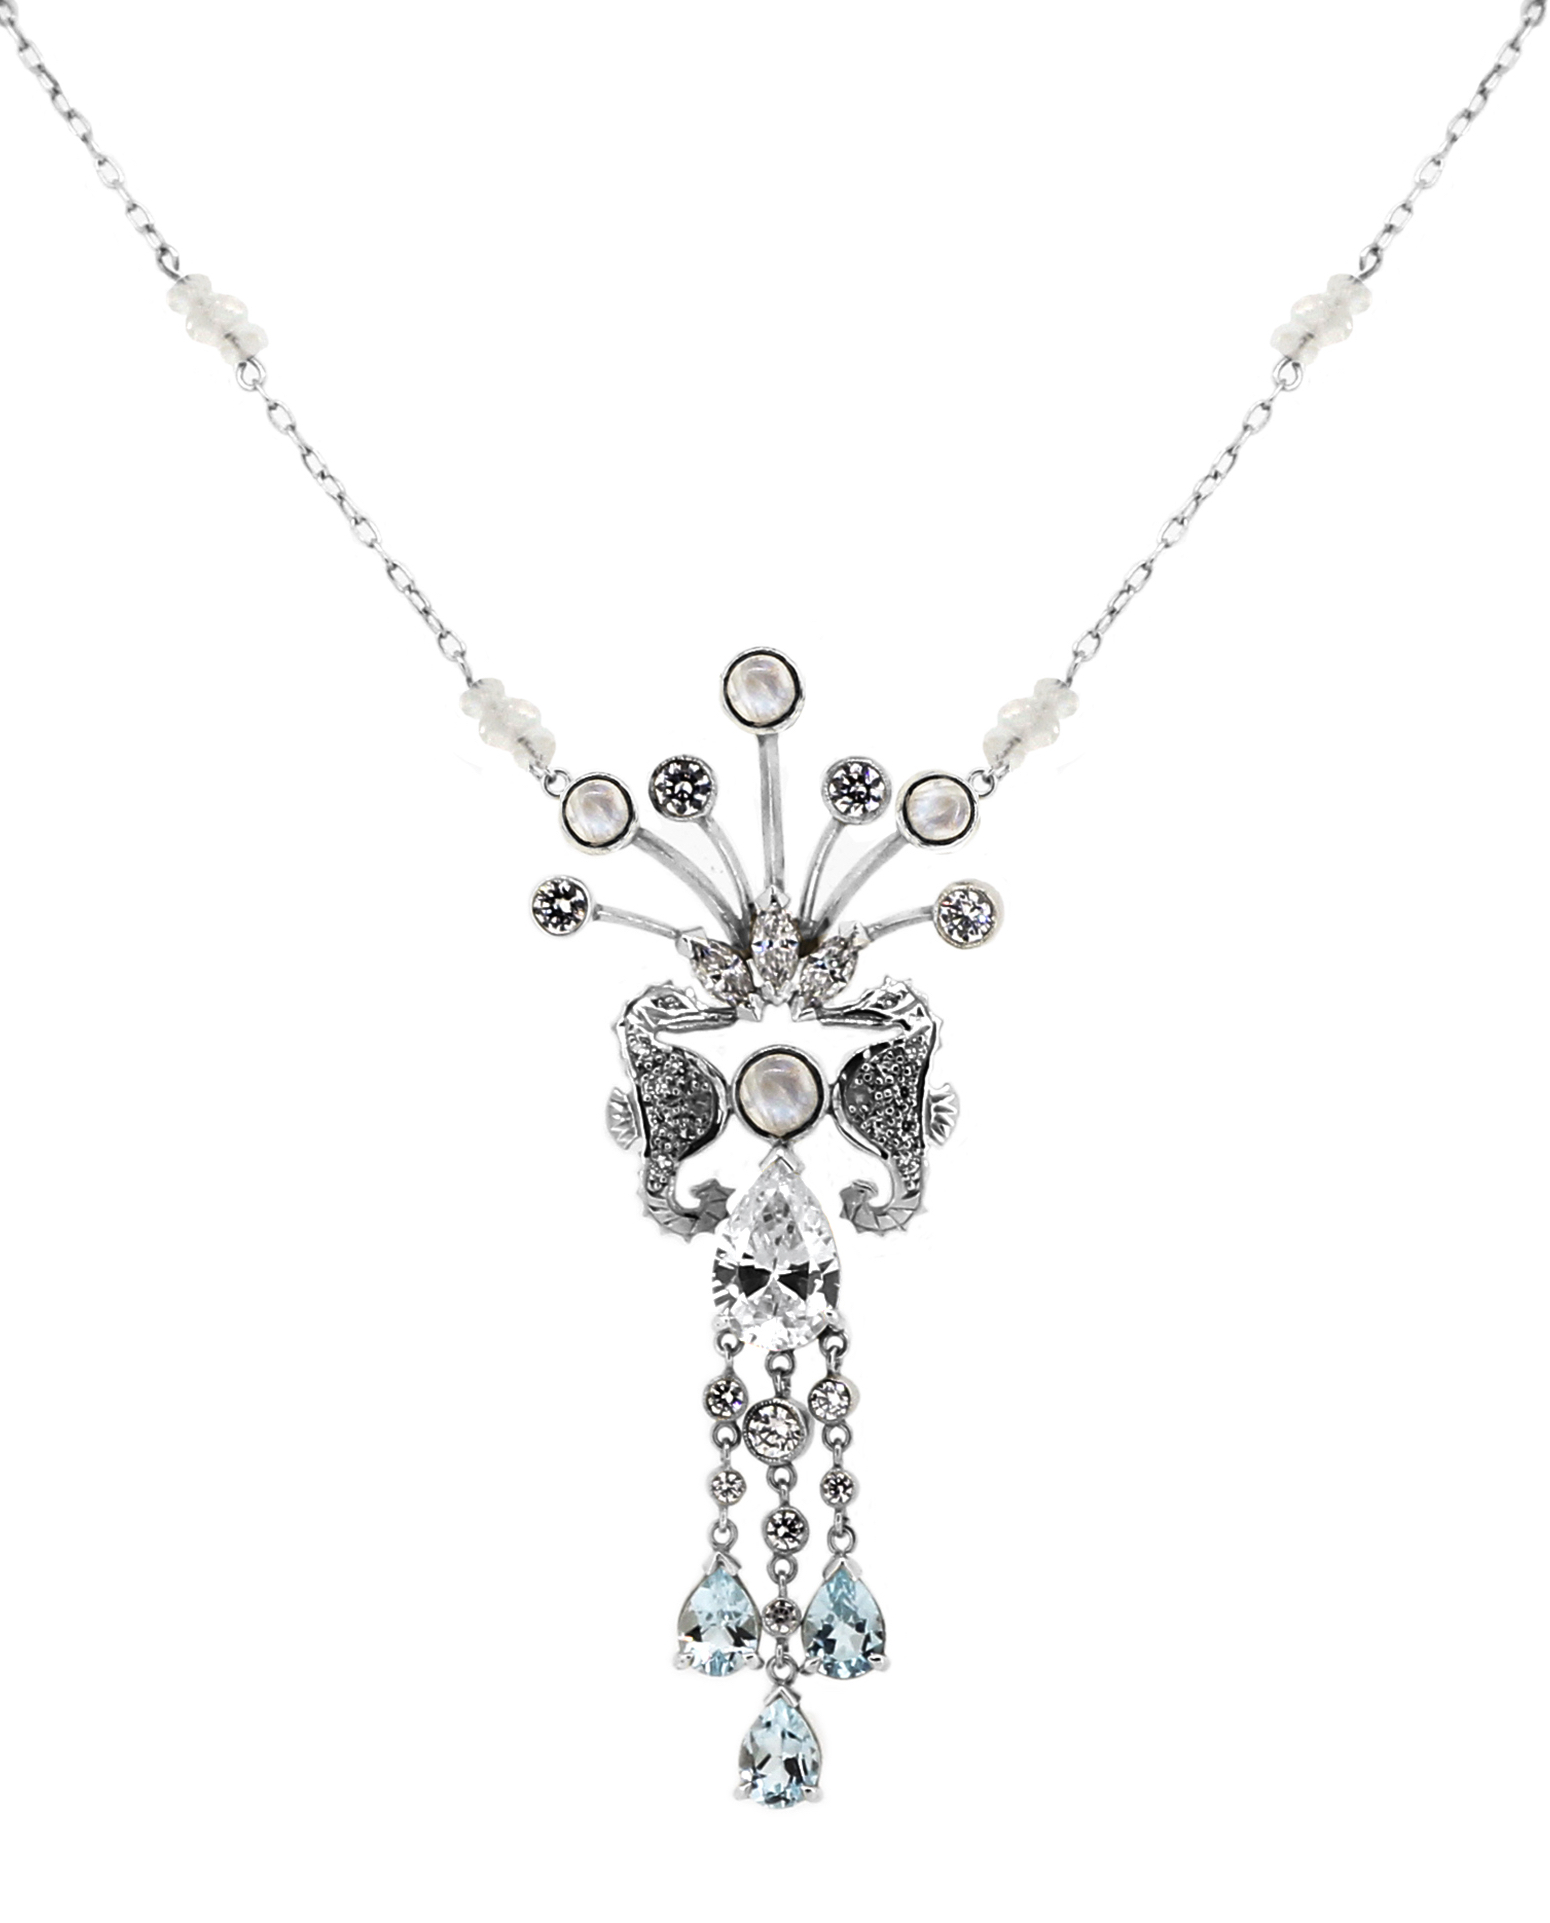 Seahorse Necklace by TORY & KO. worn by Robyn Tunney.jpg